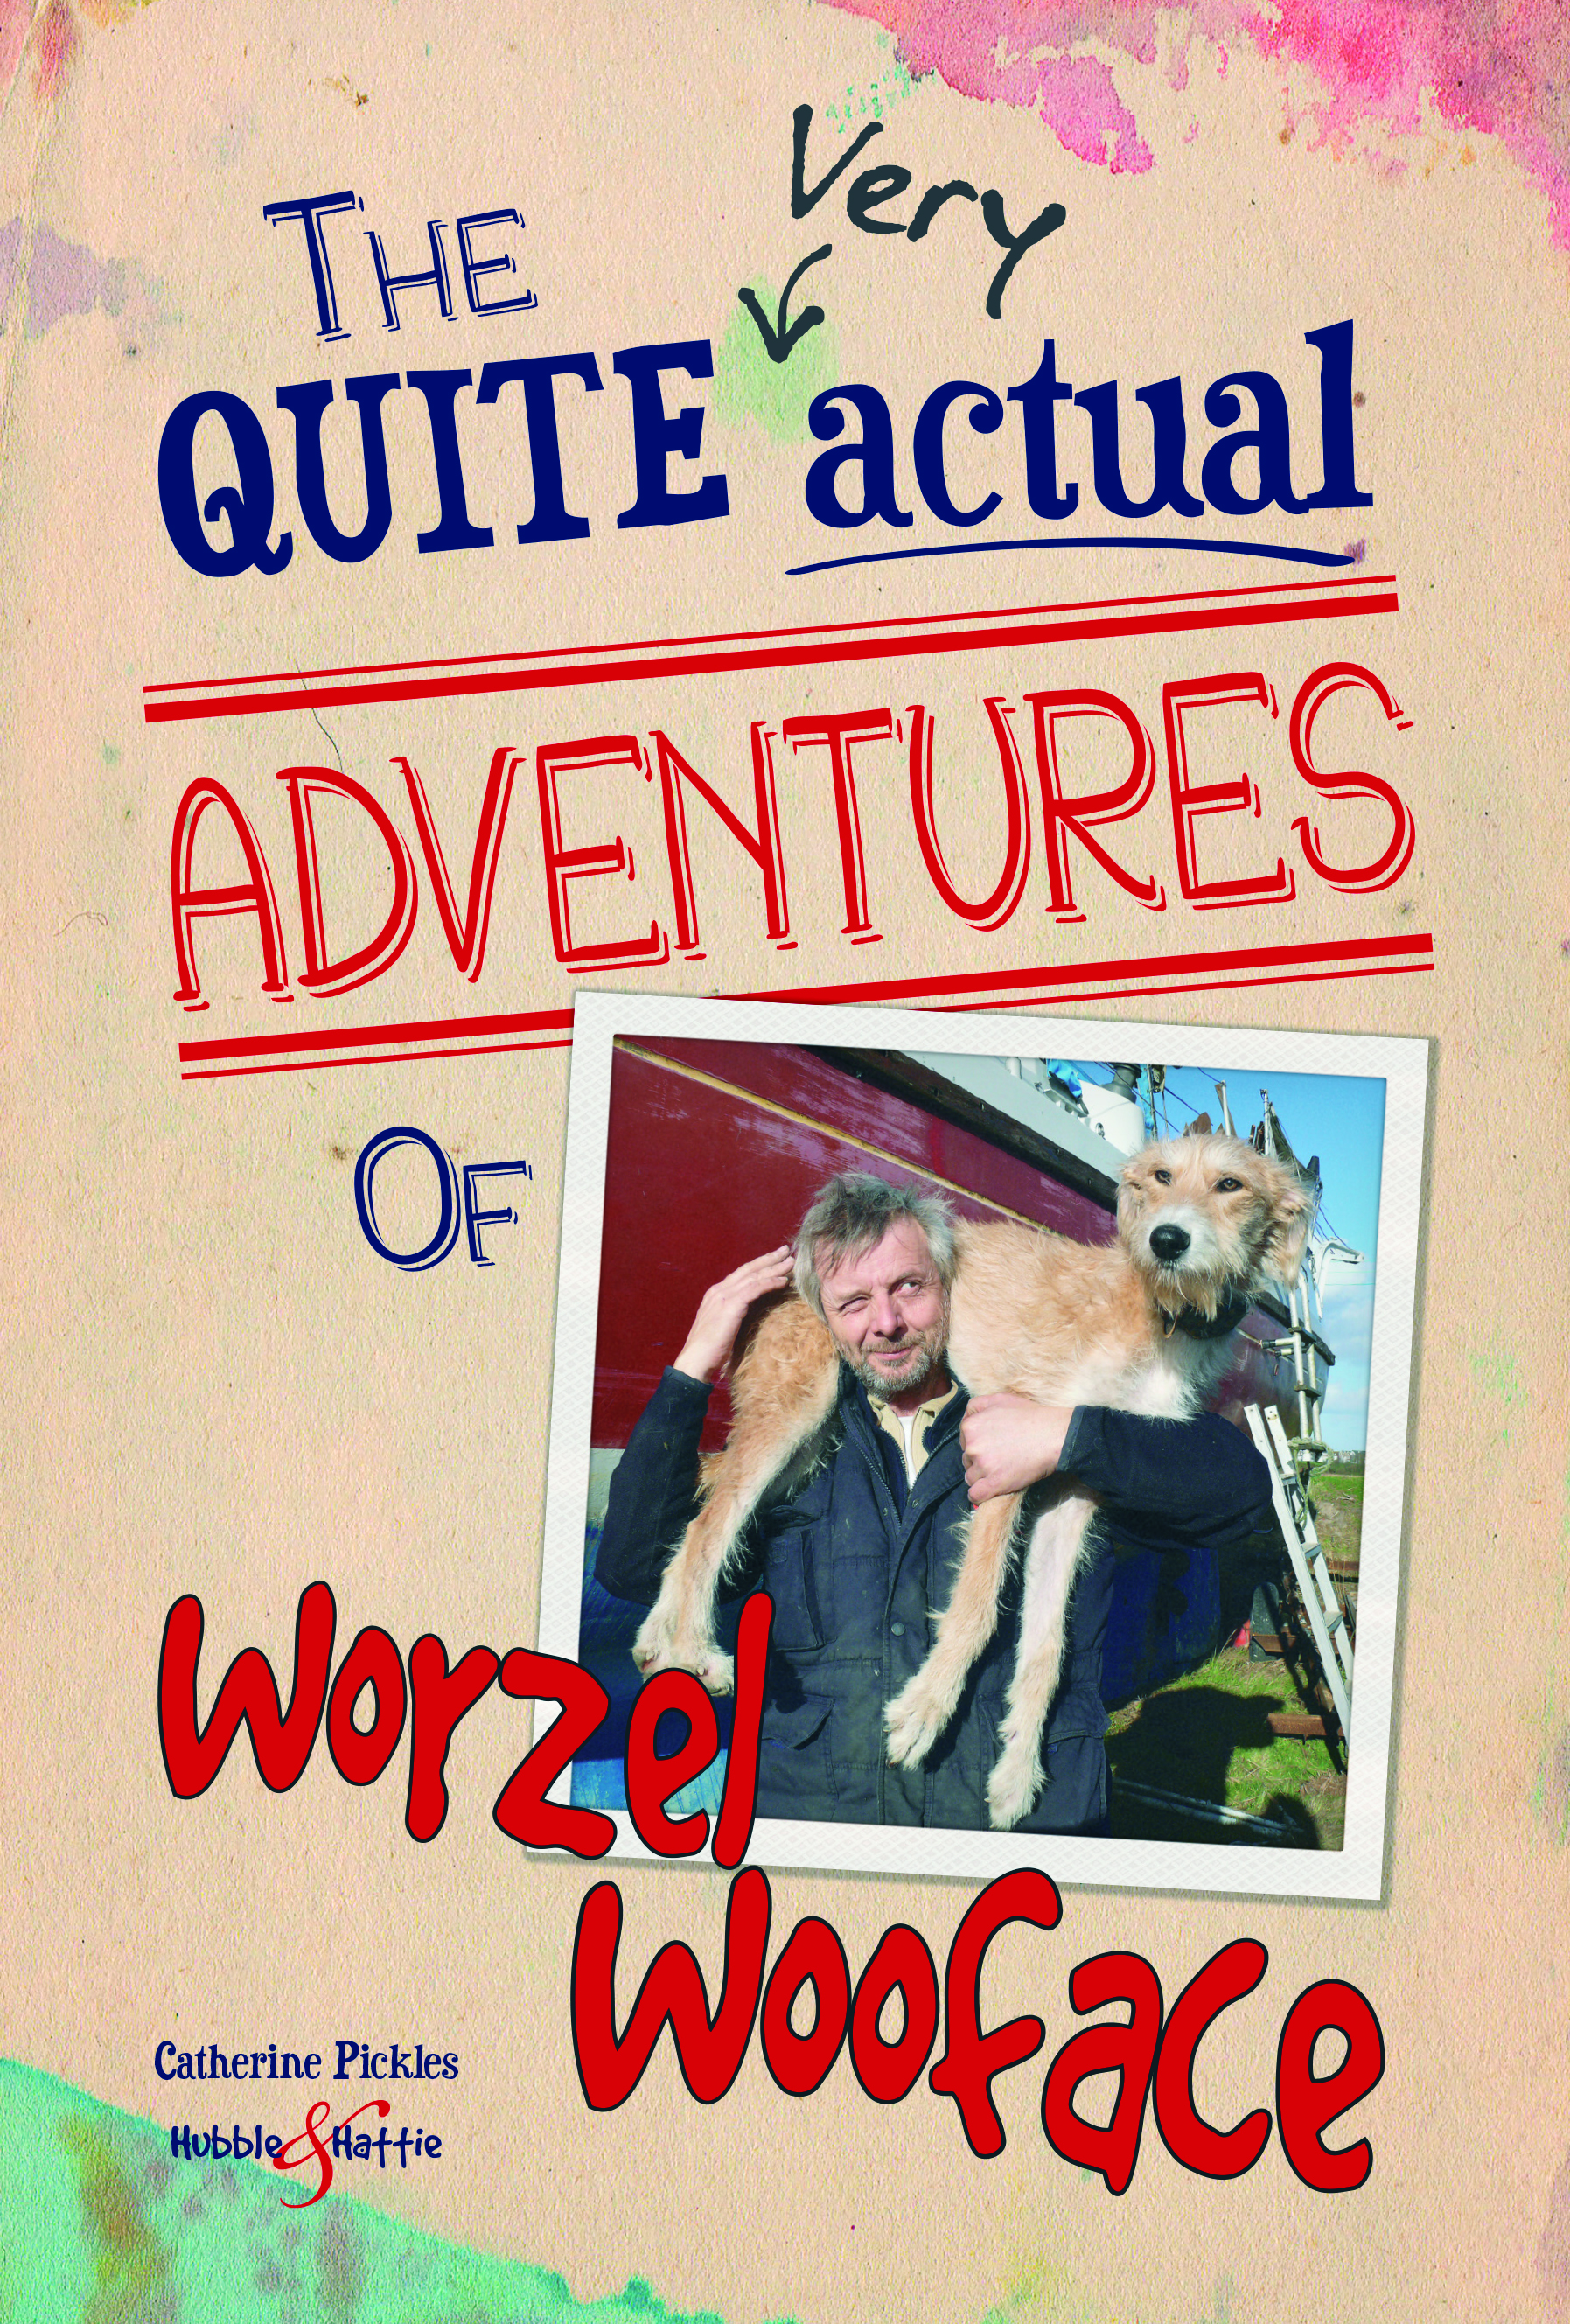 The quite very actual adventures of Worzel Wooface –